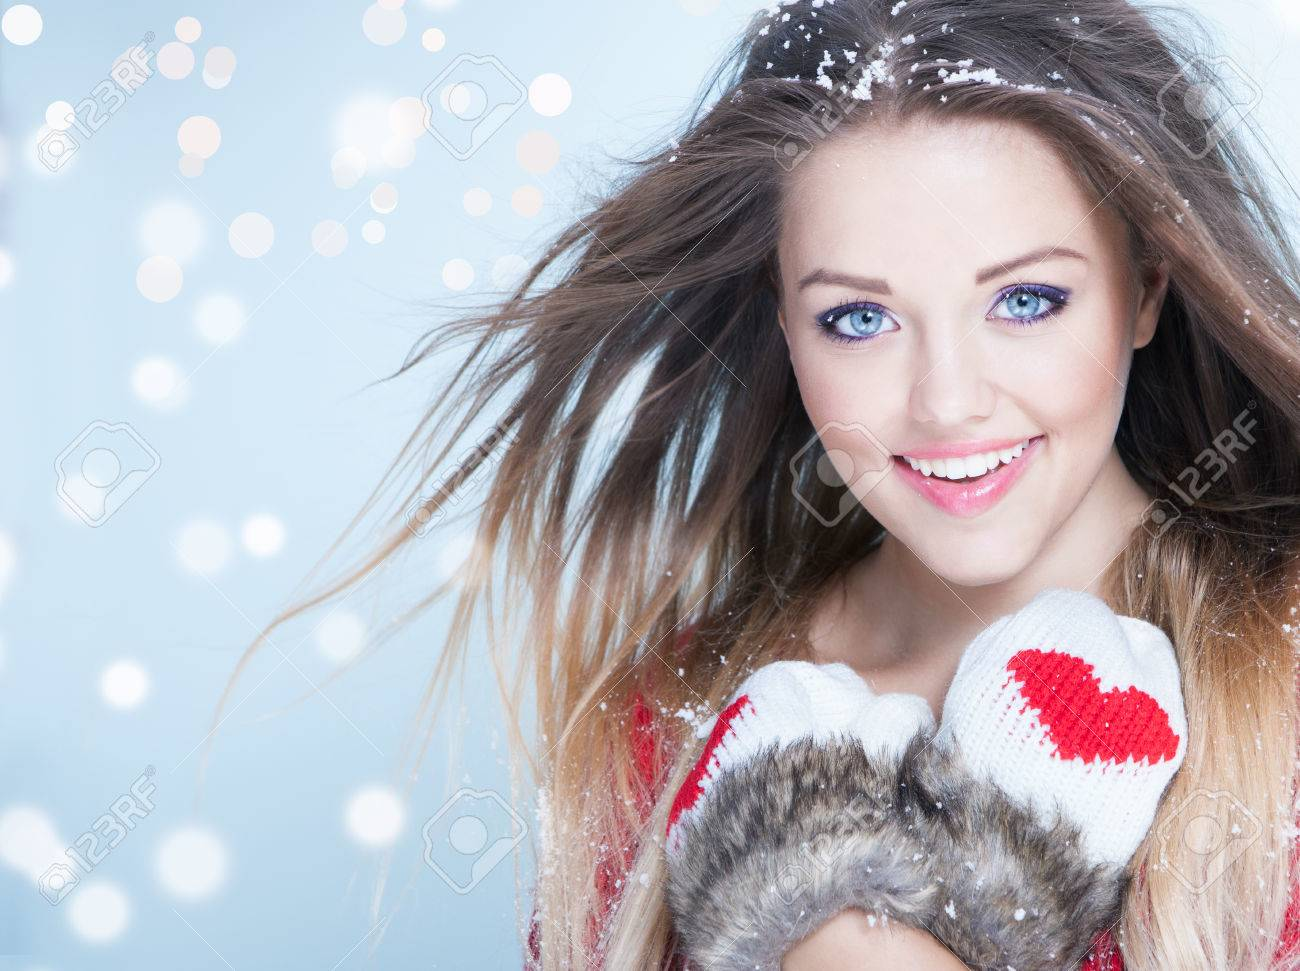 Beautiful happy young woman wearing winter gloves covered with snow flakes. Christmas portrait concept. - 45485636